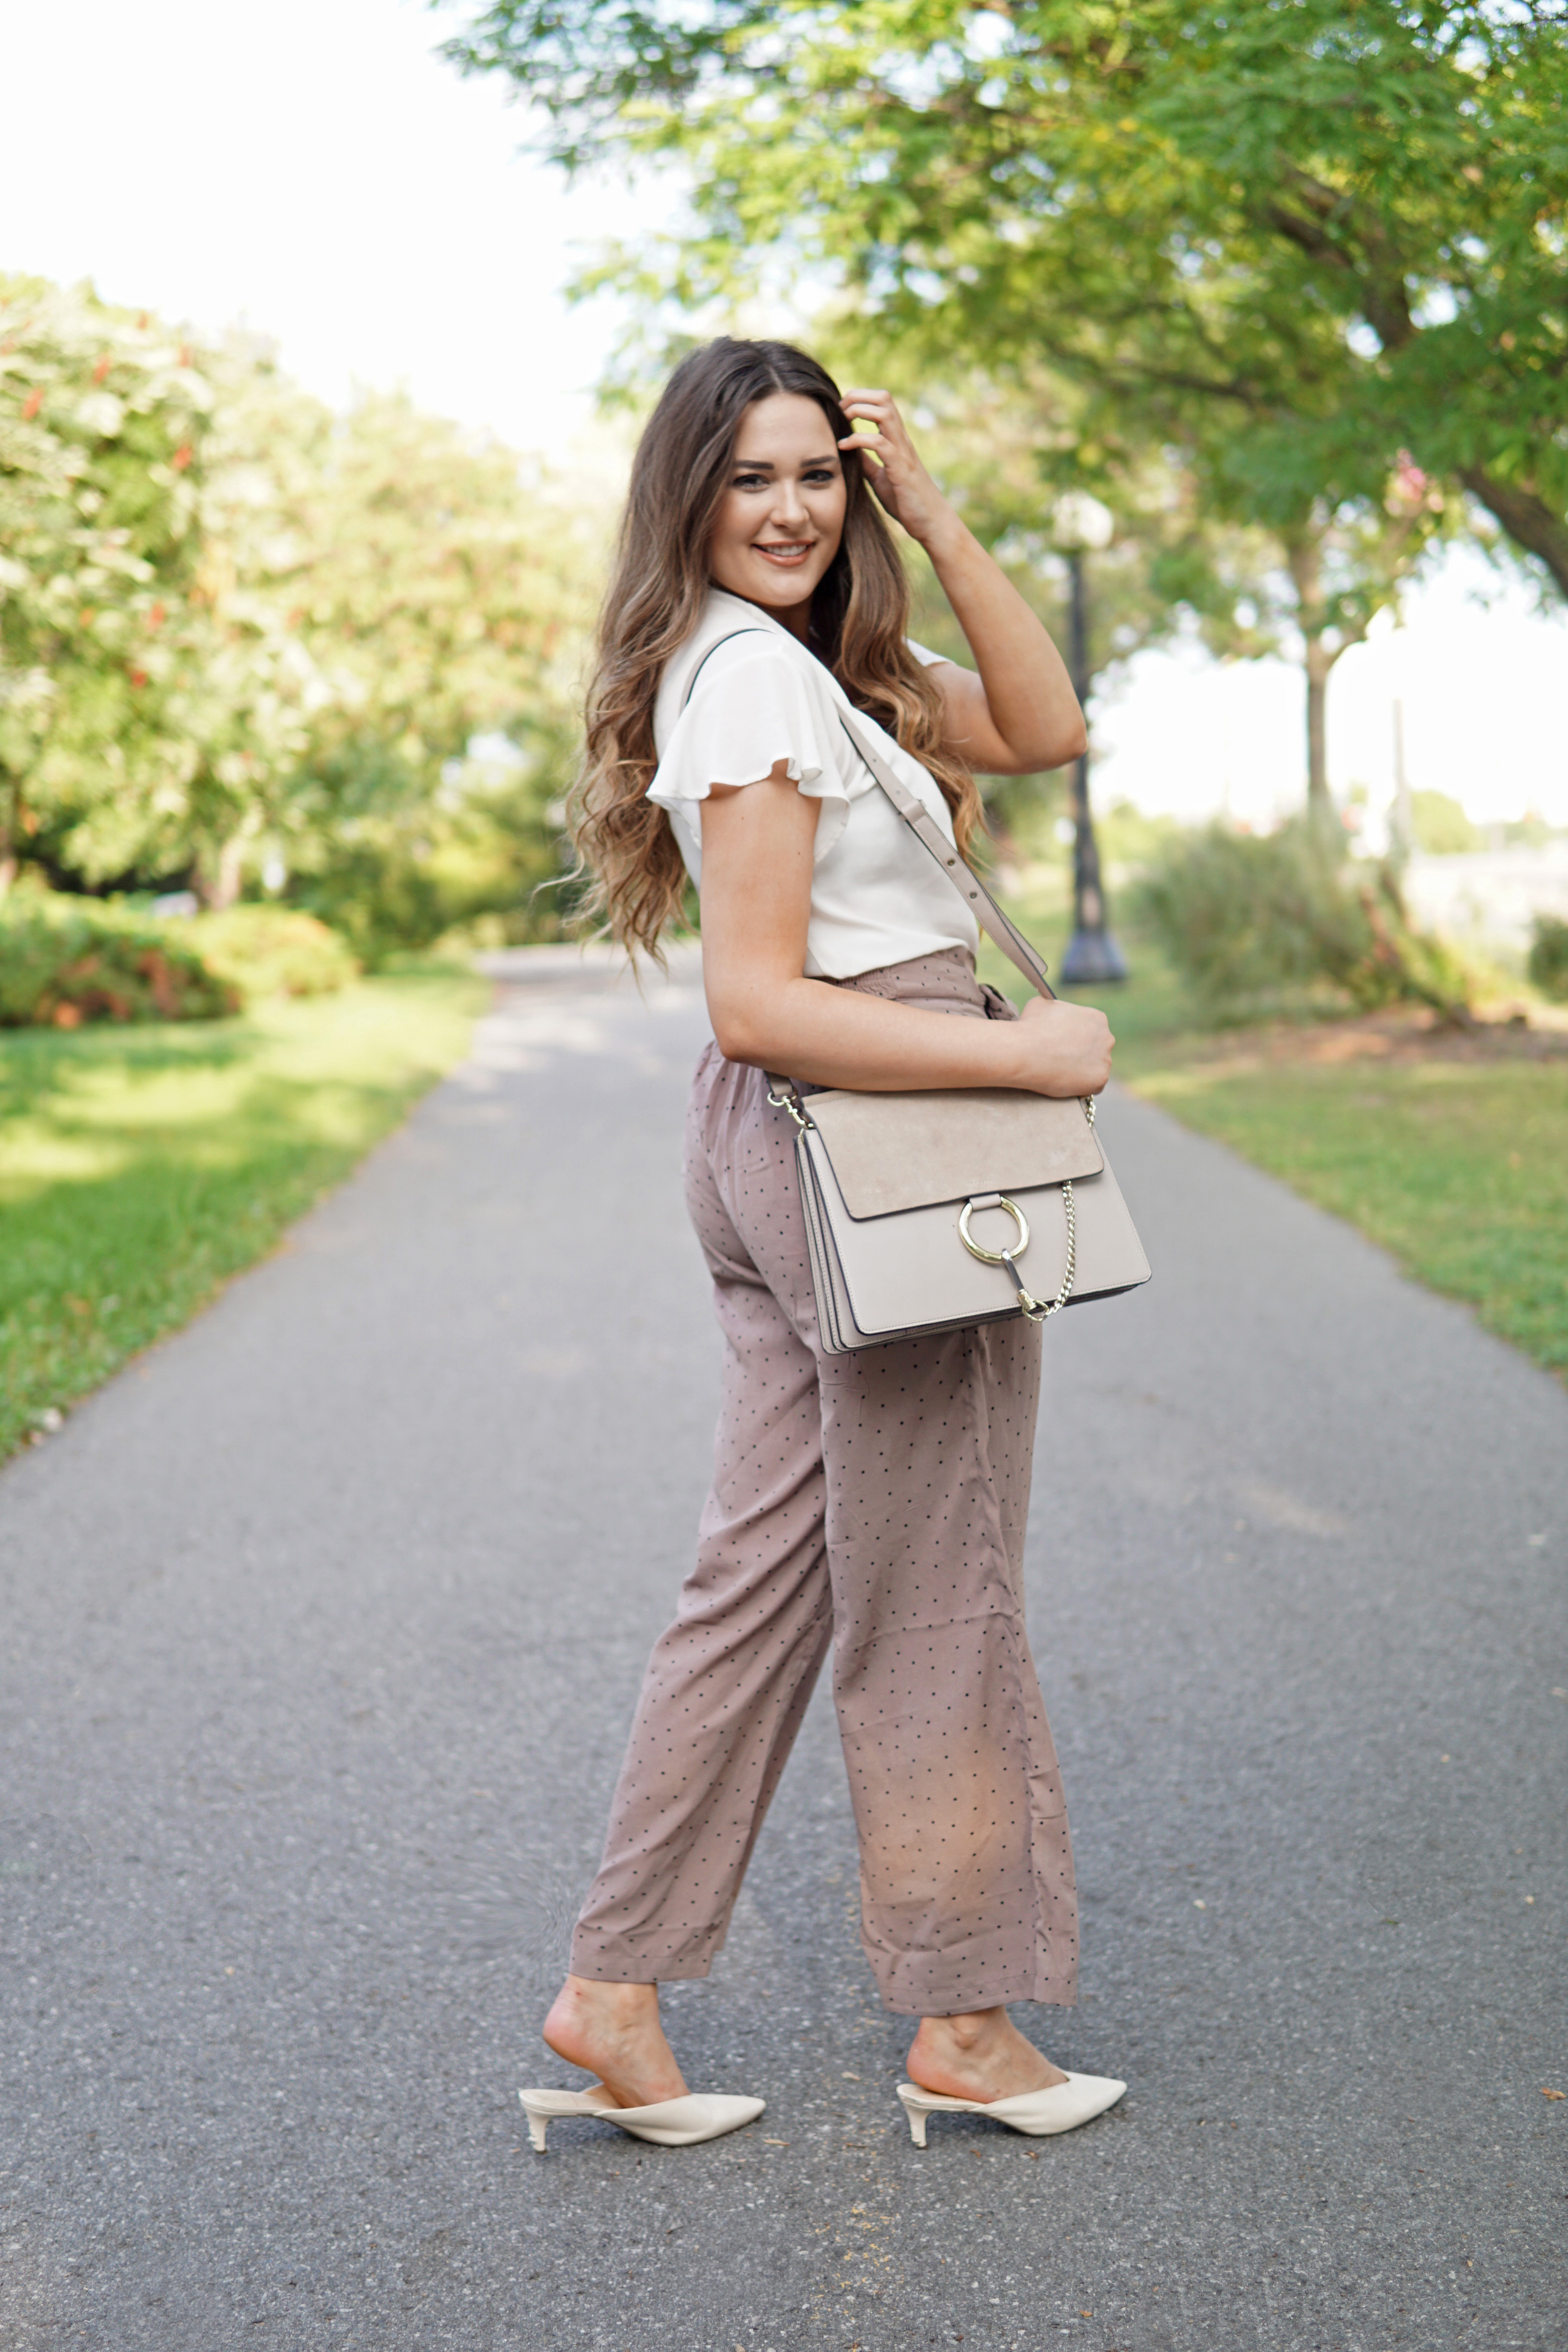 Mash elle beauty and lifestyle blogger | Chloe bag dupes | fashion | kitten heels | fall fashion